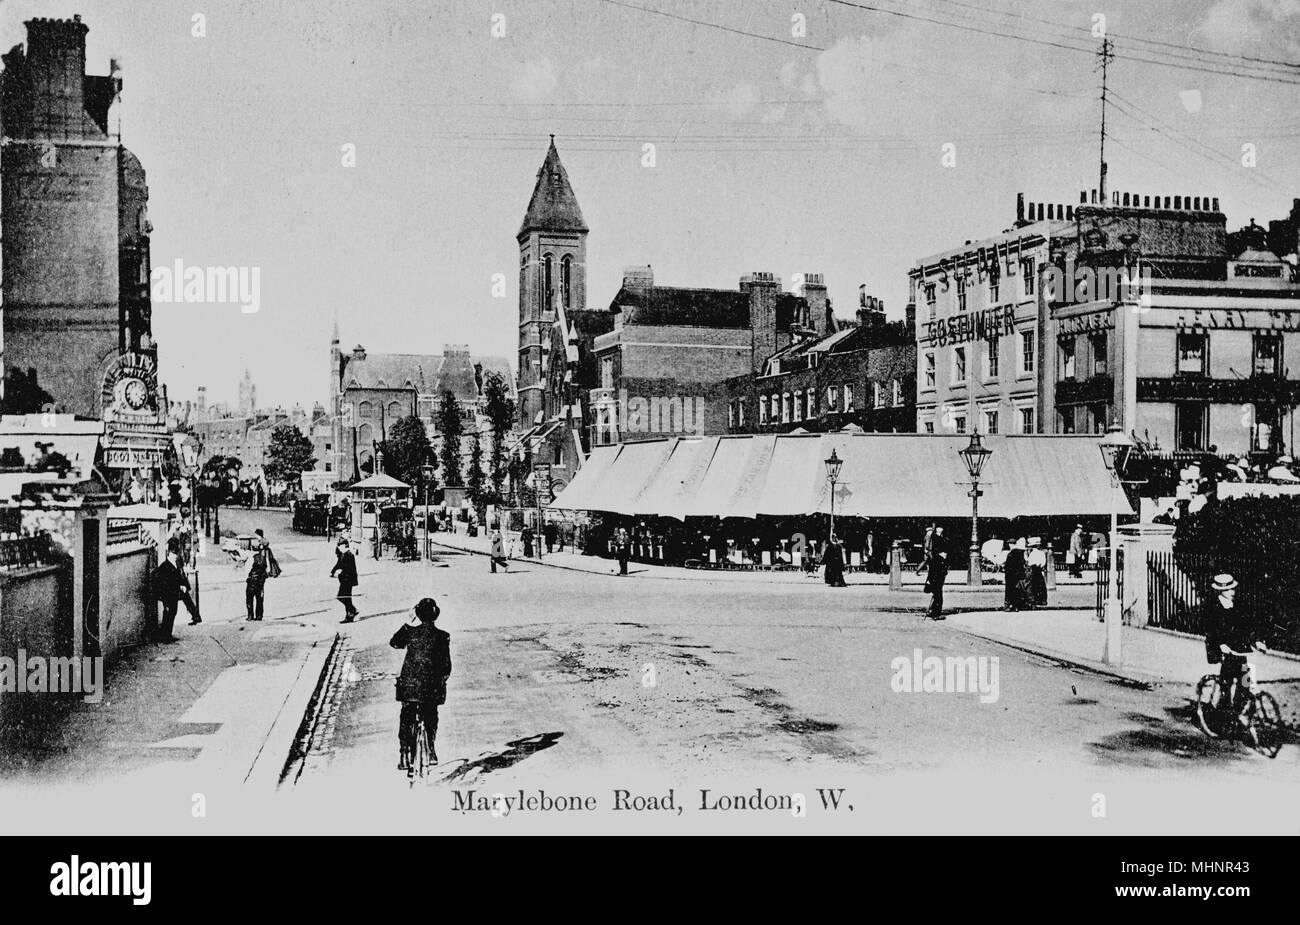 Marylebone Road, Marylebone, London, looking east across Edgware Road from Sussex Gardens.      Date: circa 1905 - Stock Image